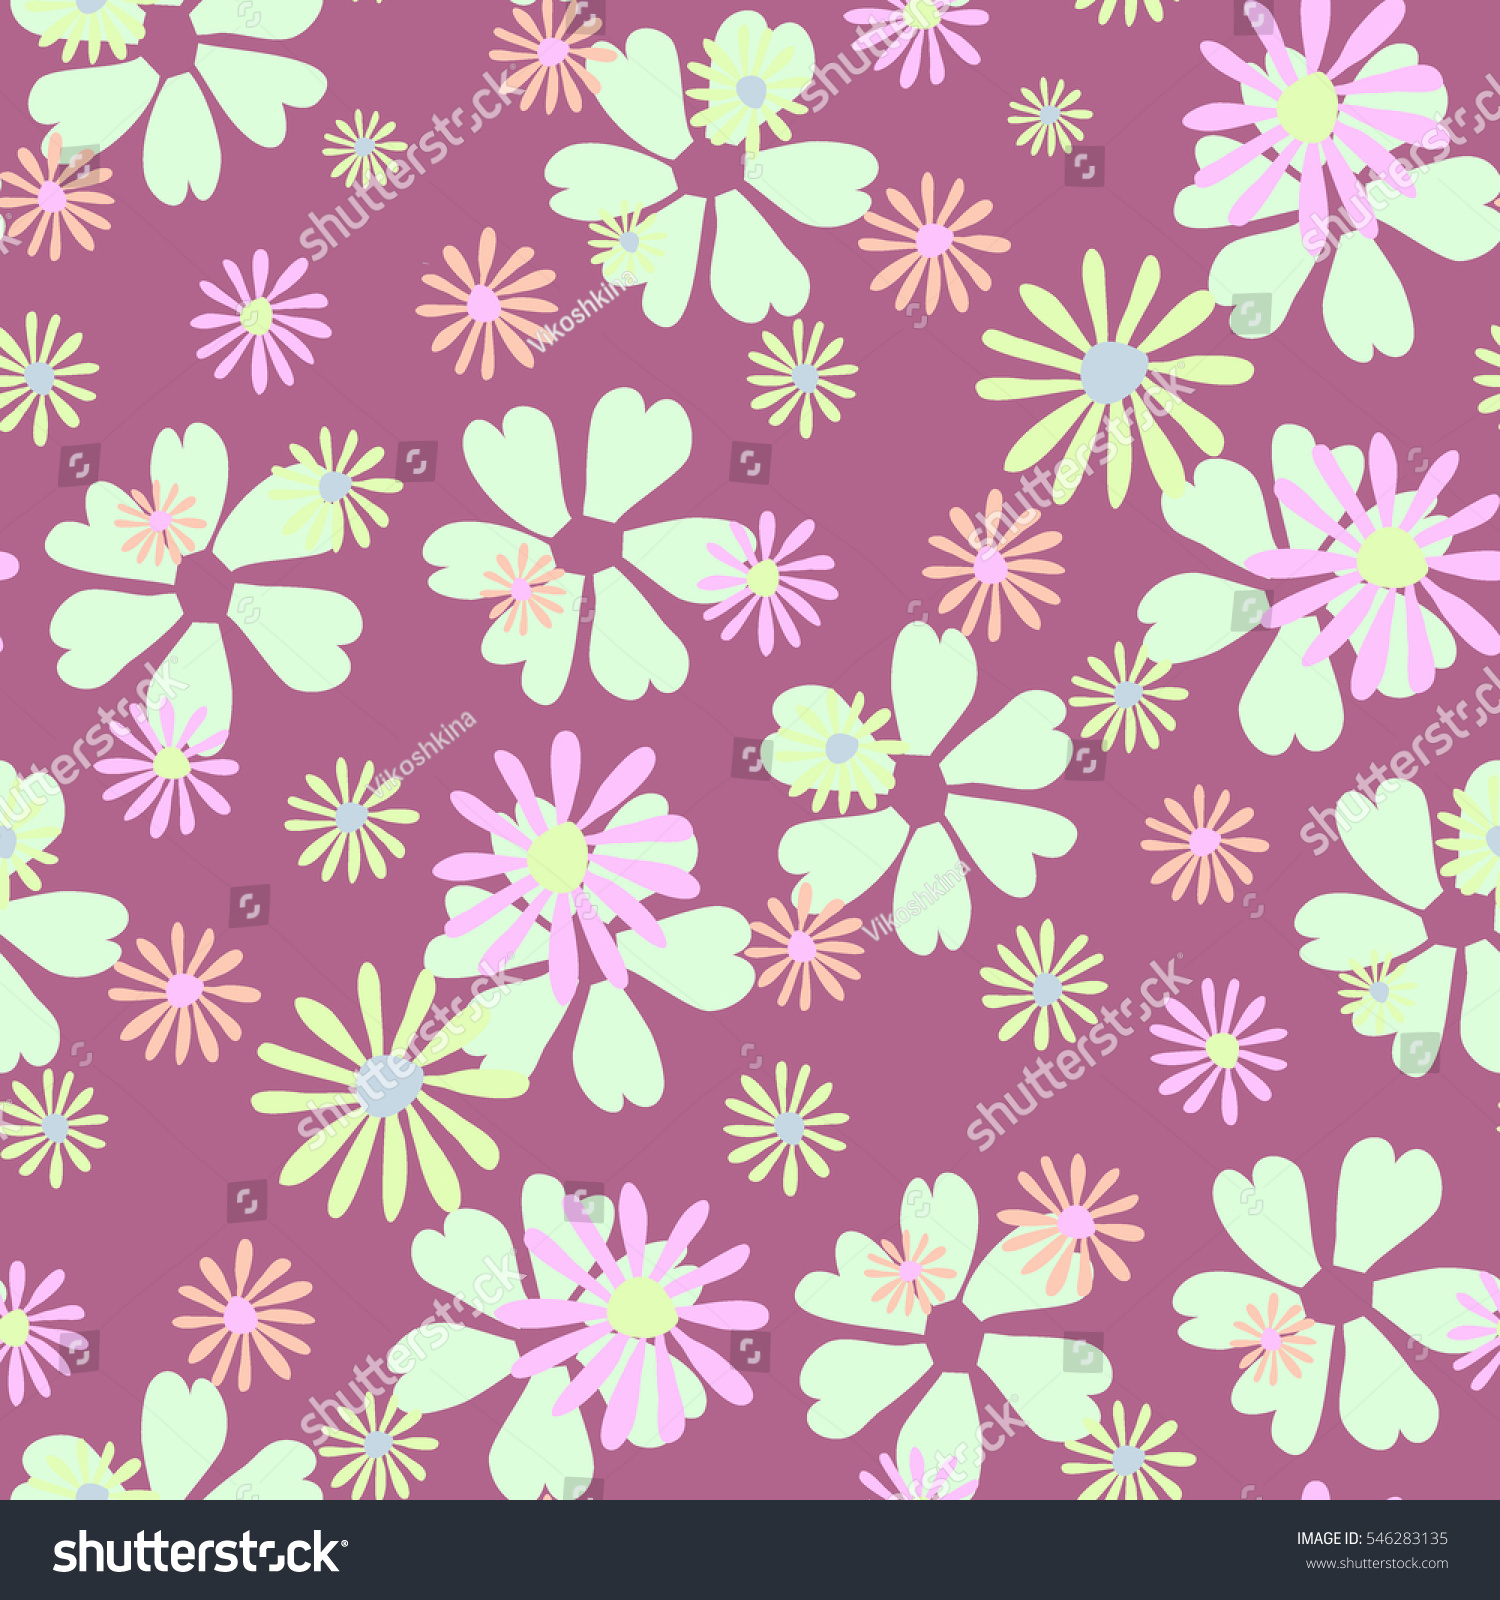 Floral Simple Seamless Pattern Detailed Flowers Stock Vector